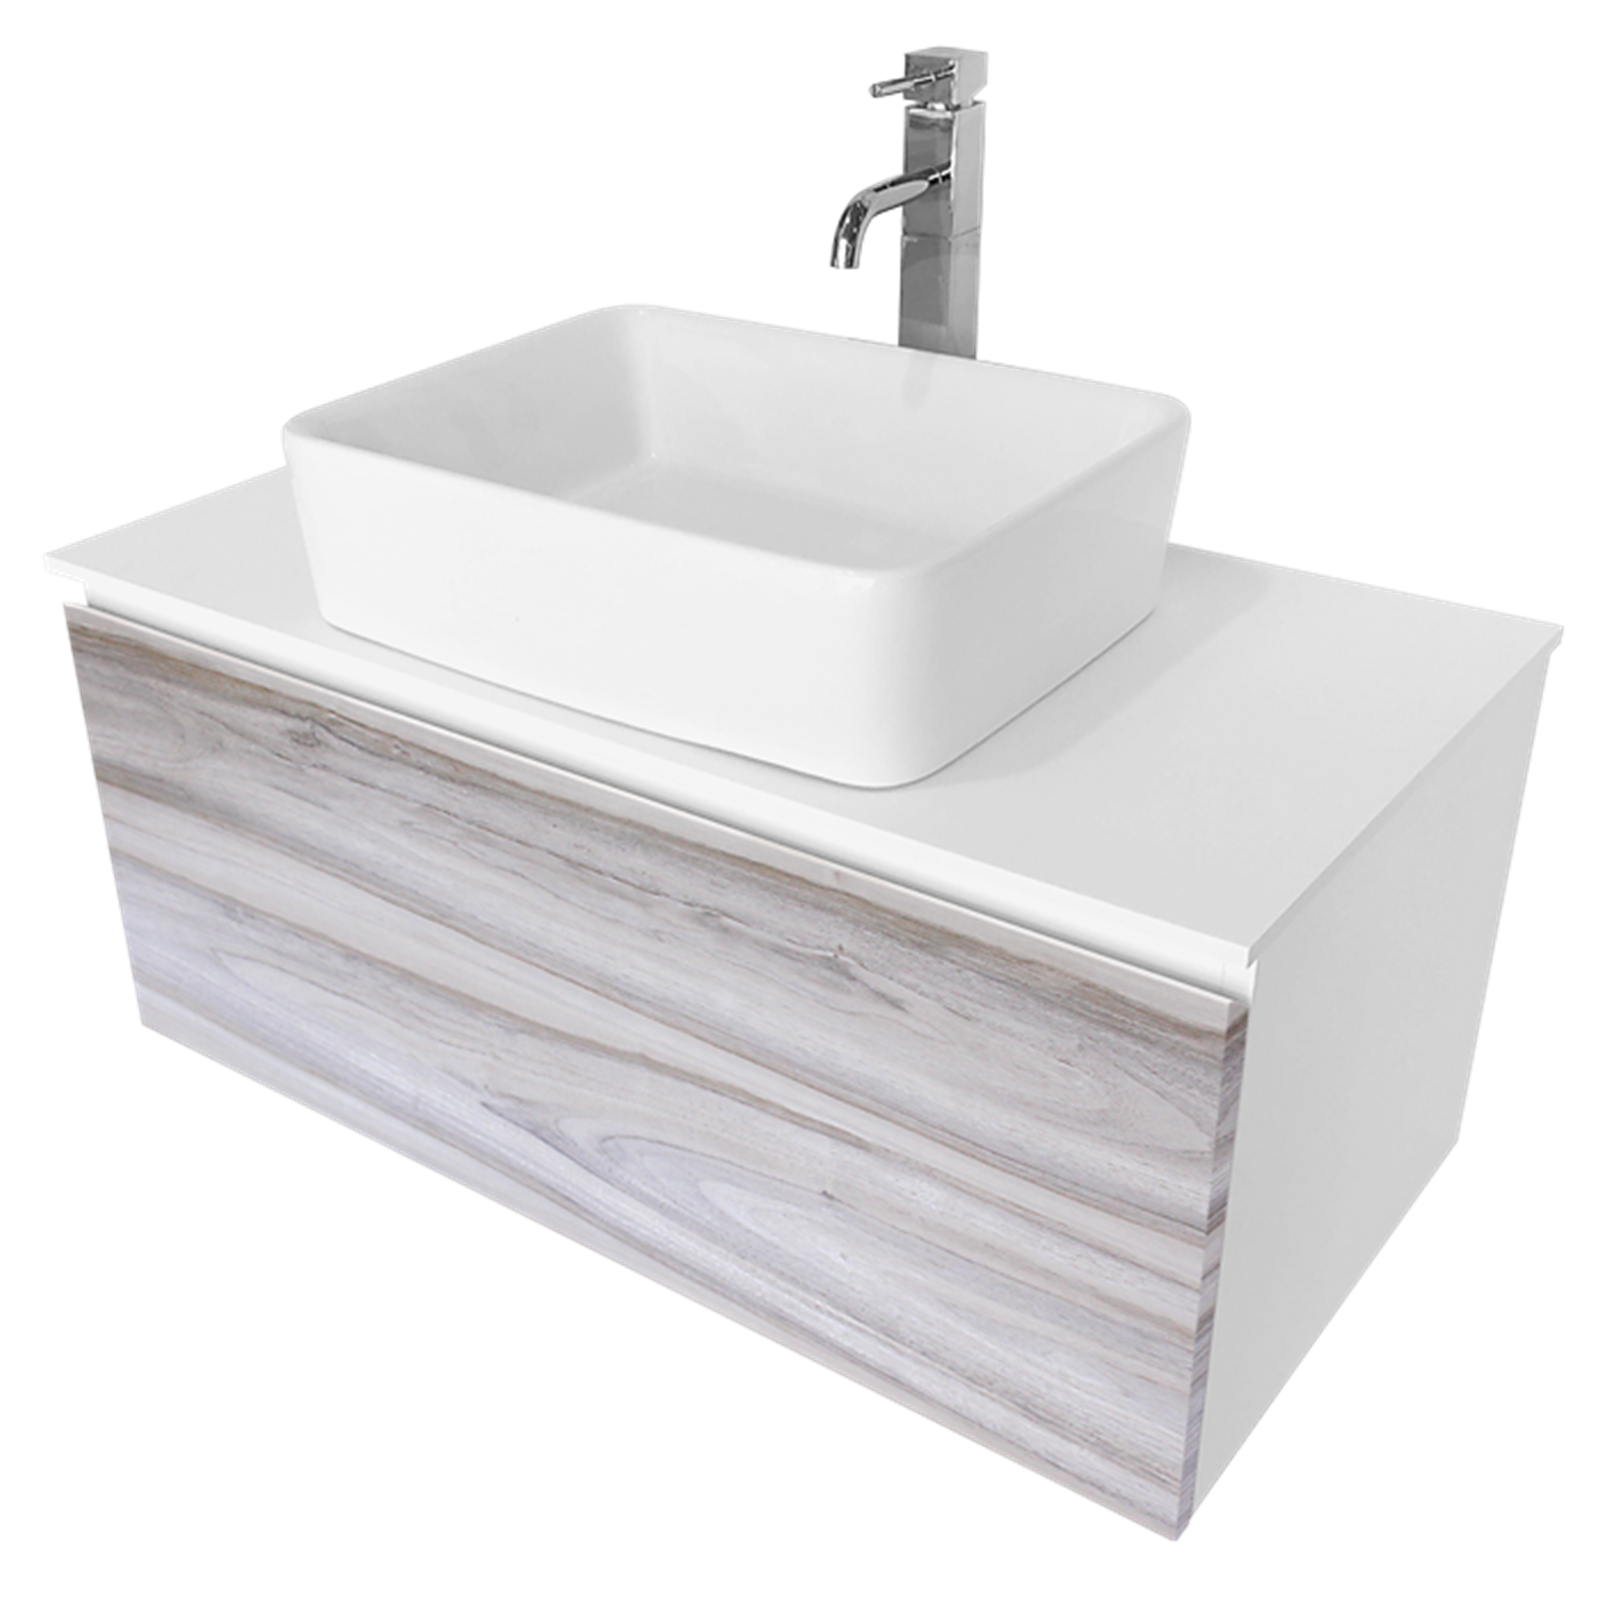 Cibo Design 900mm Cafe Oak Glee Vanity With White Counter Top Basin White Counters Vanity Bathroom Style